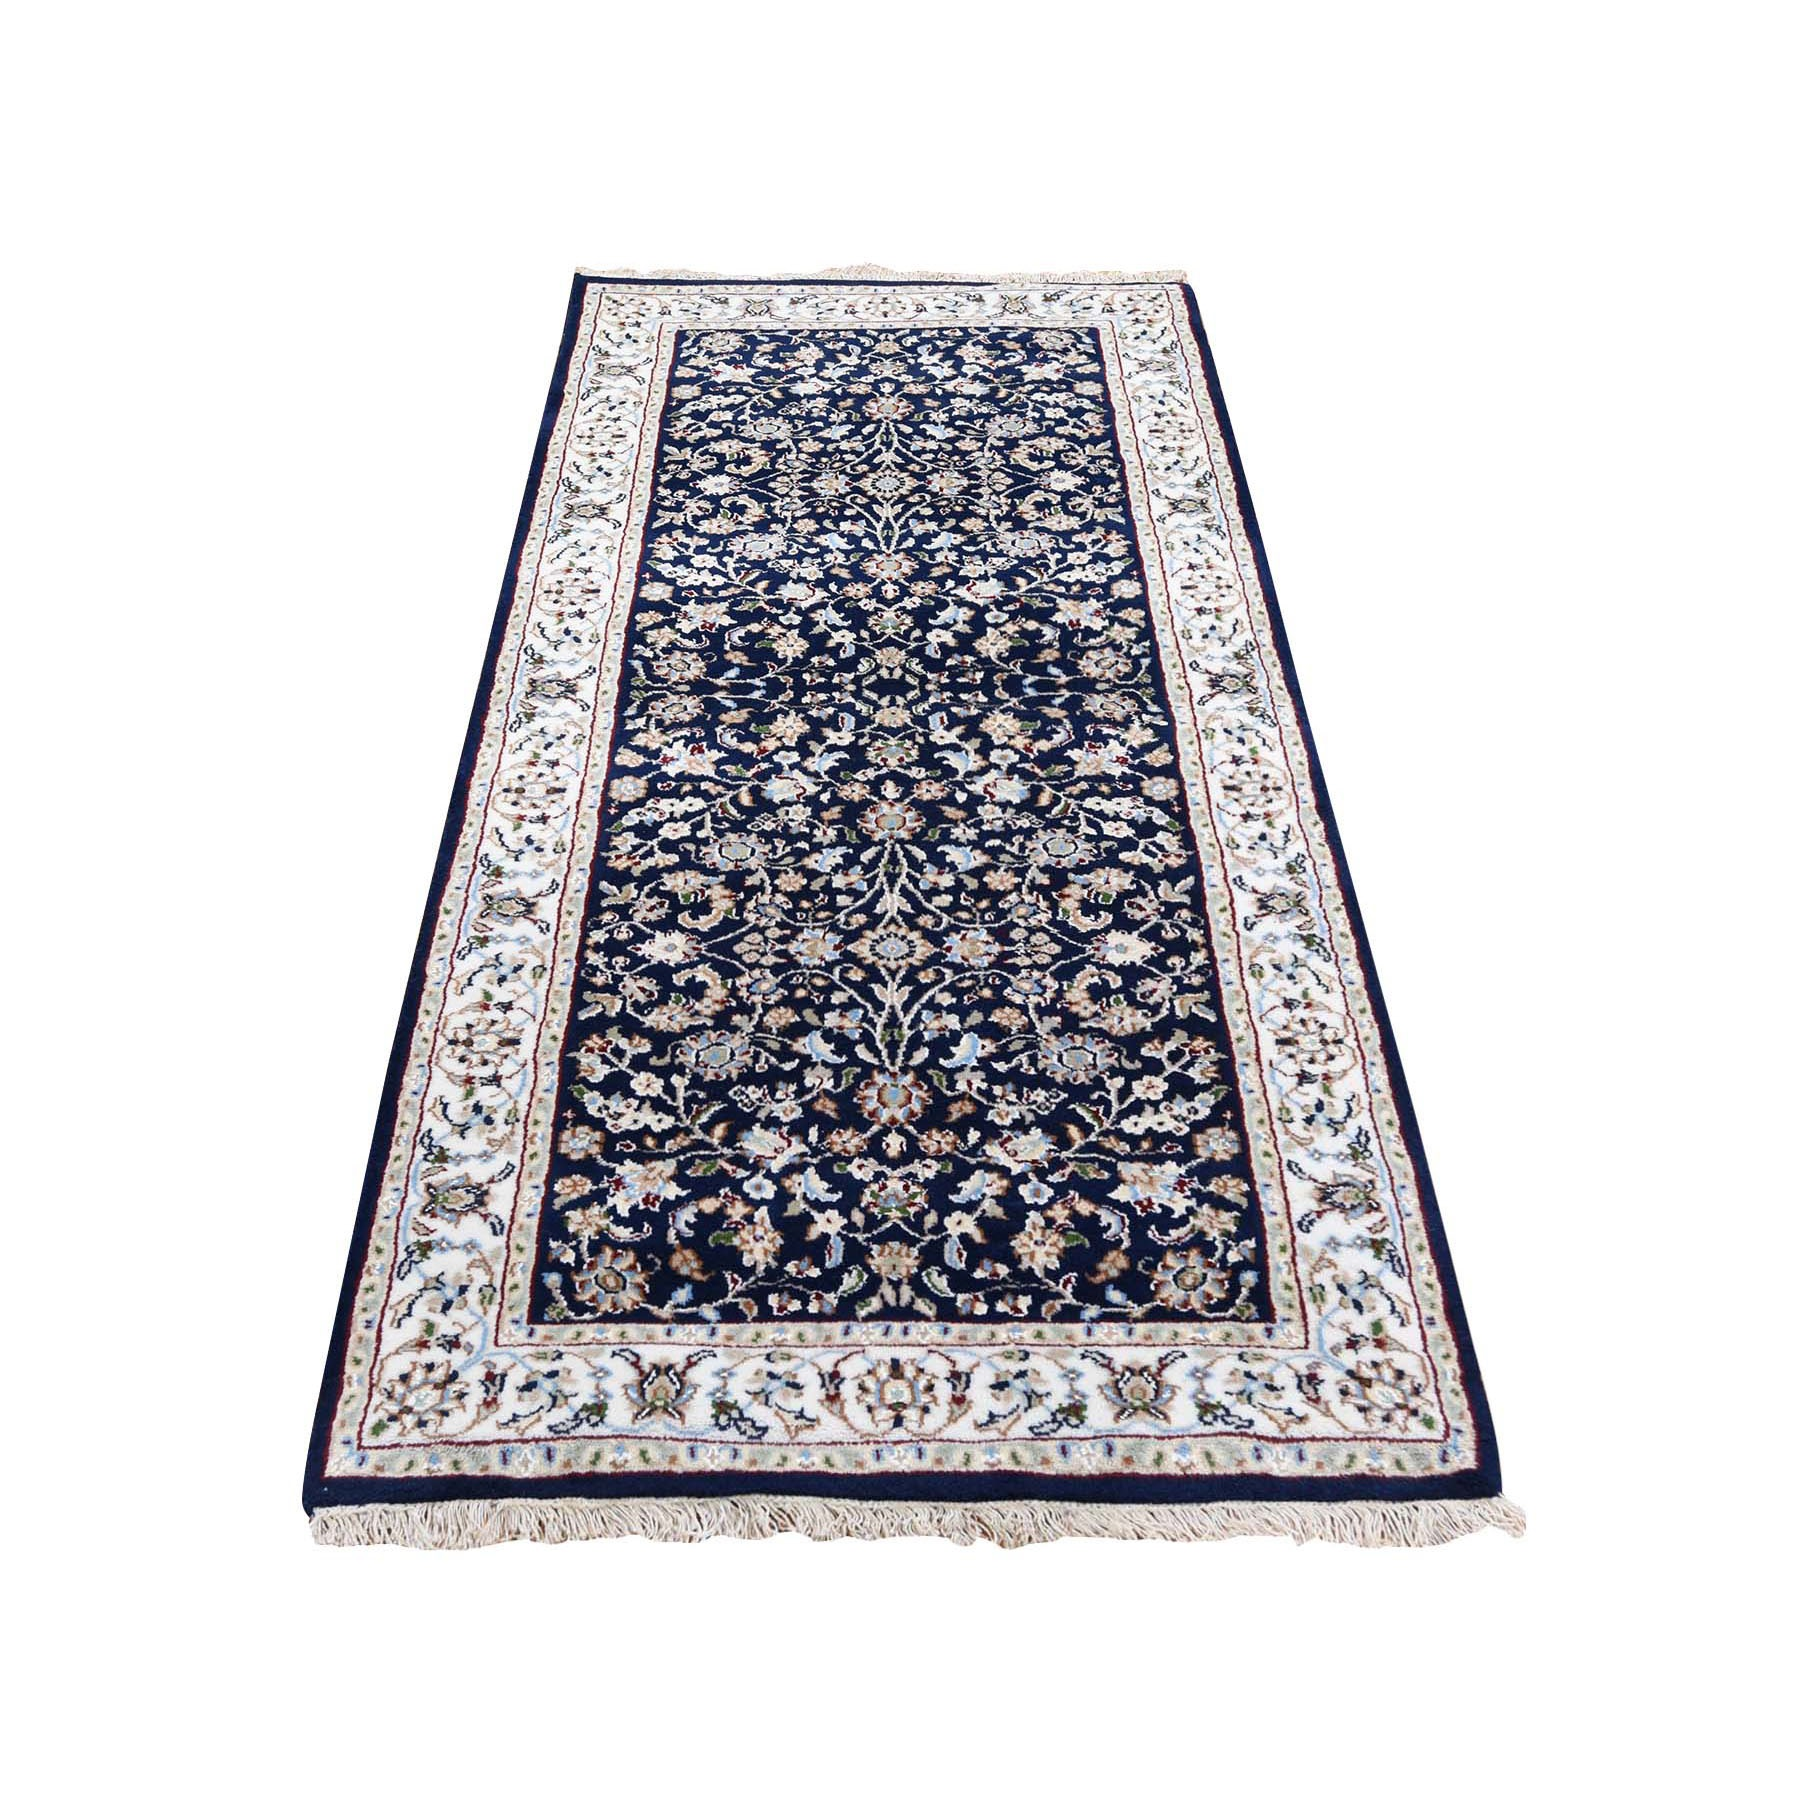 "2'8""x6' Wool And Silk 250 KPSI Navy Blue All Over Design Nain Runner Hand Woven Oriental Rug"